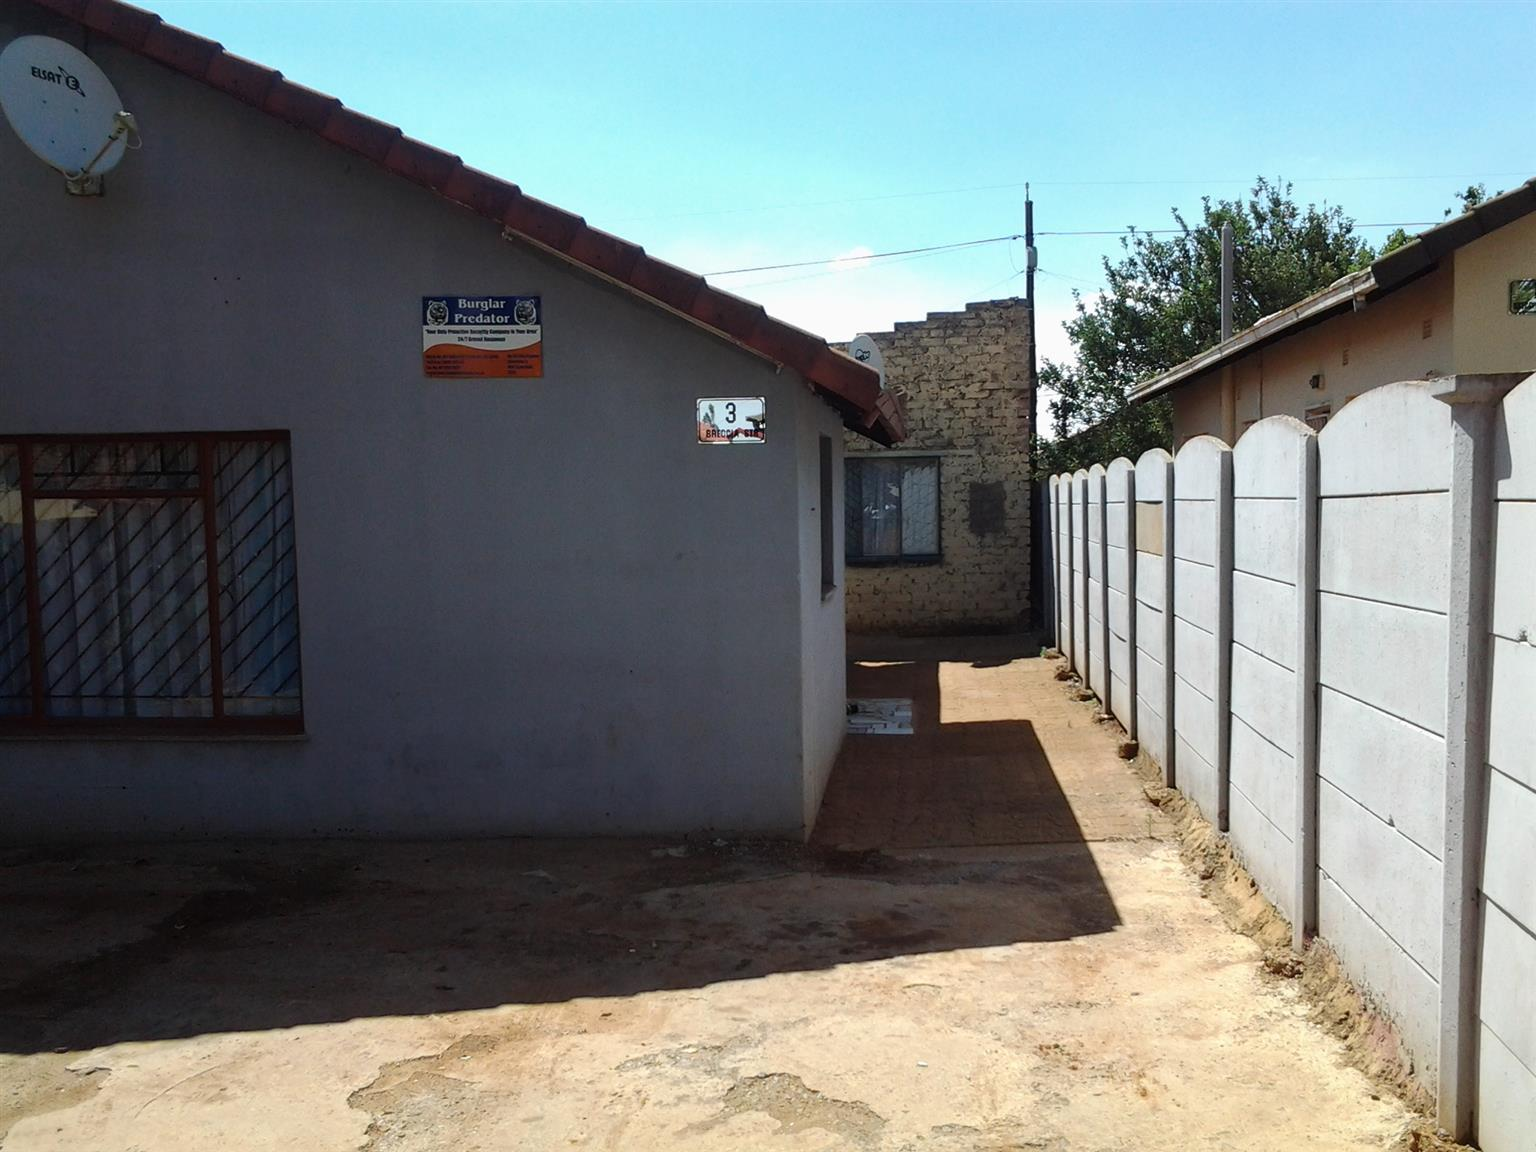 3 Bedroom House in Ennerdale